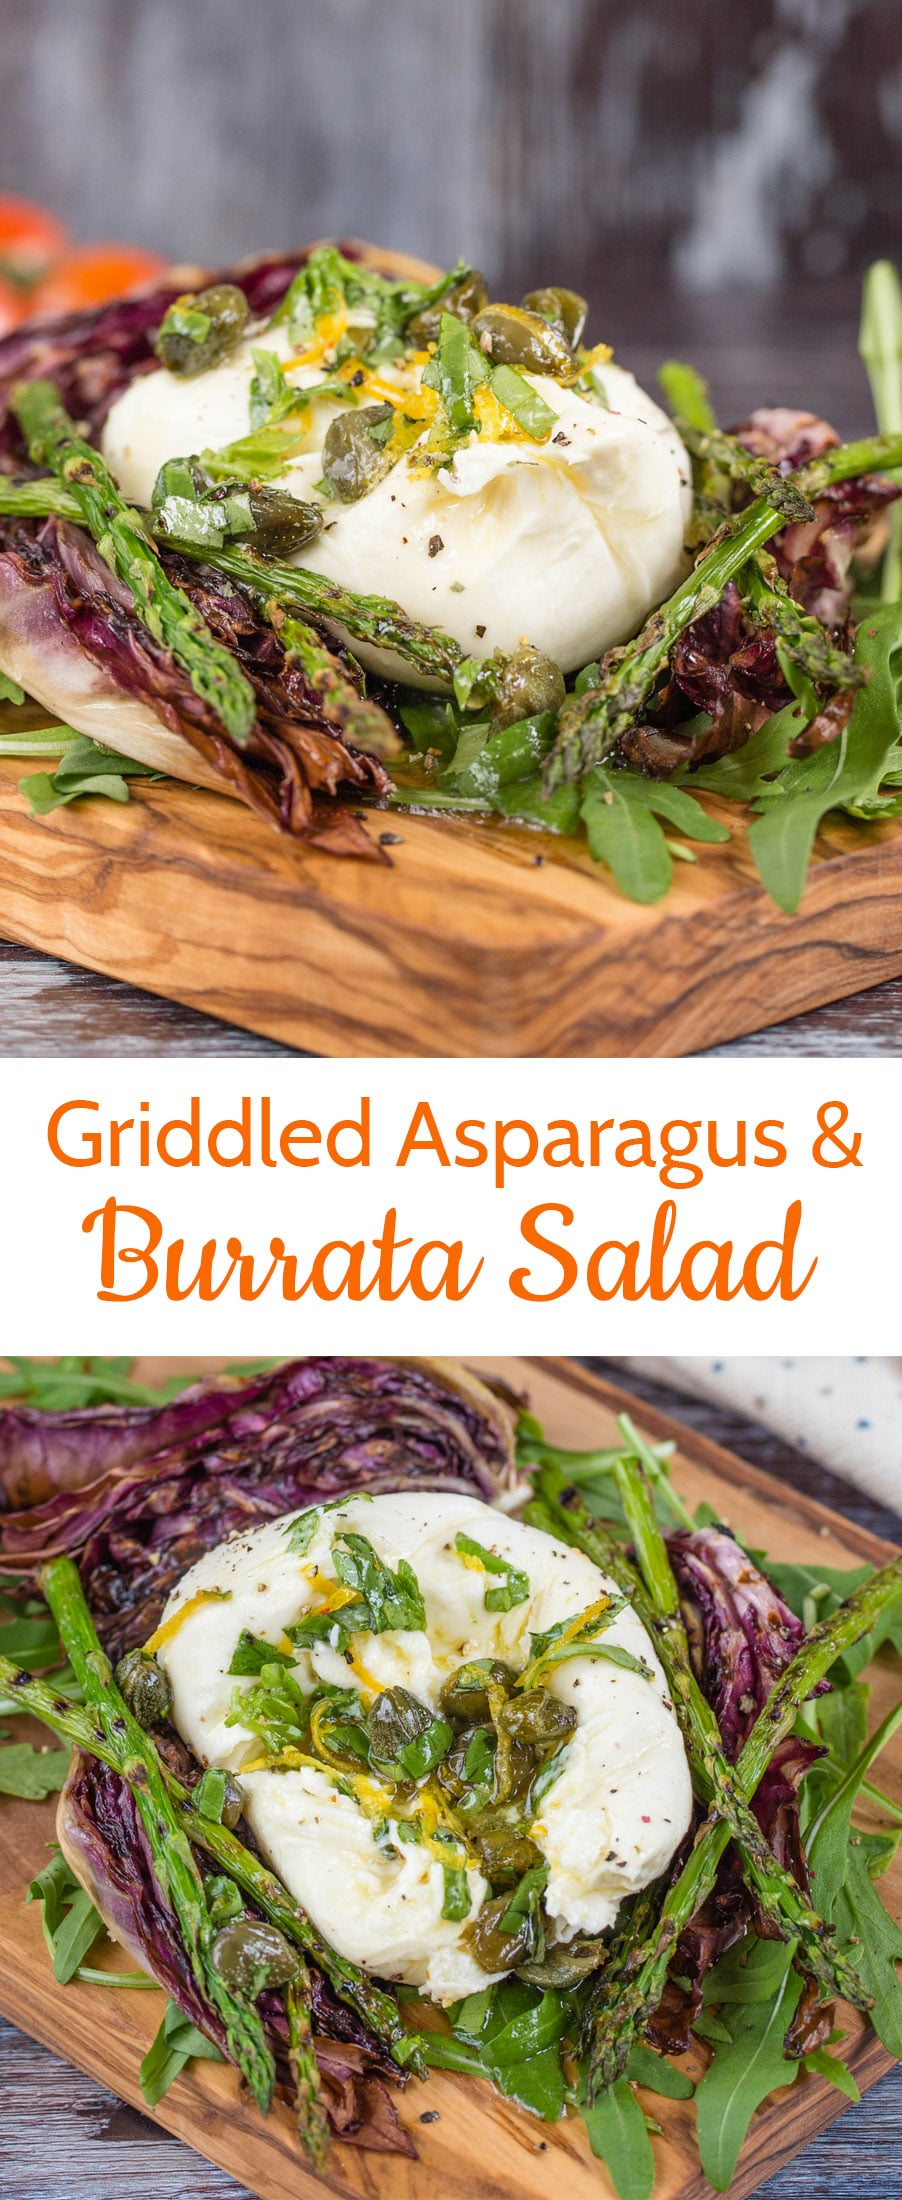 This easy to make burrata salad is packed with contrasting flavours and textures and is simple enough for a weekday lunch, or impressive enough for a dinner party.